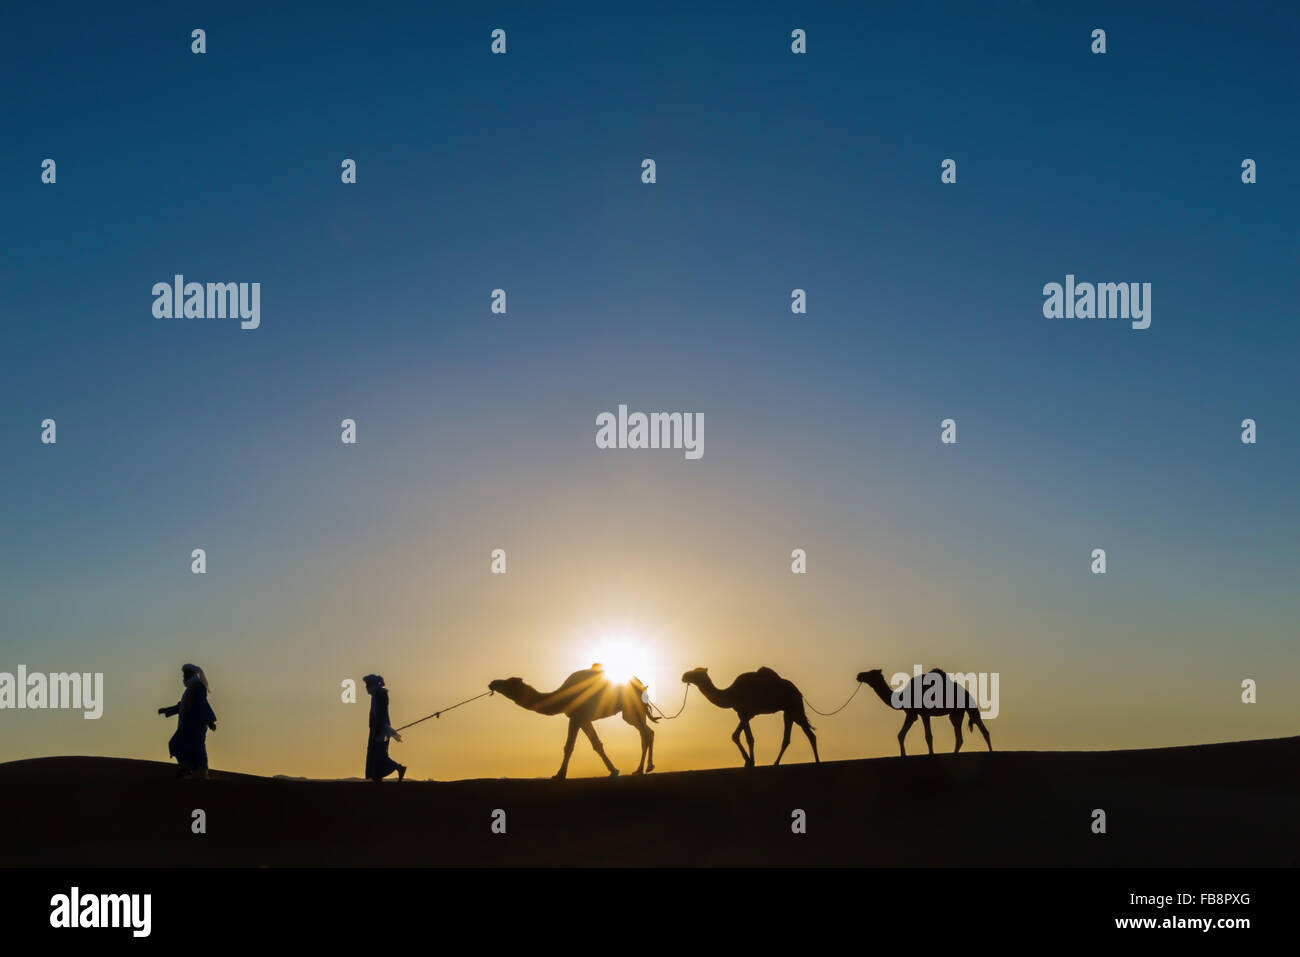 Nomads with dromedaries (camels) at sunrise in the Sahara desert of Morocco. - Stock Image